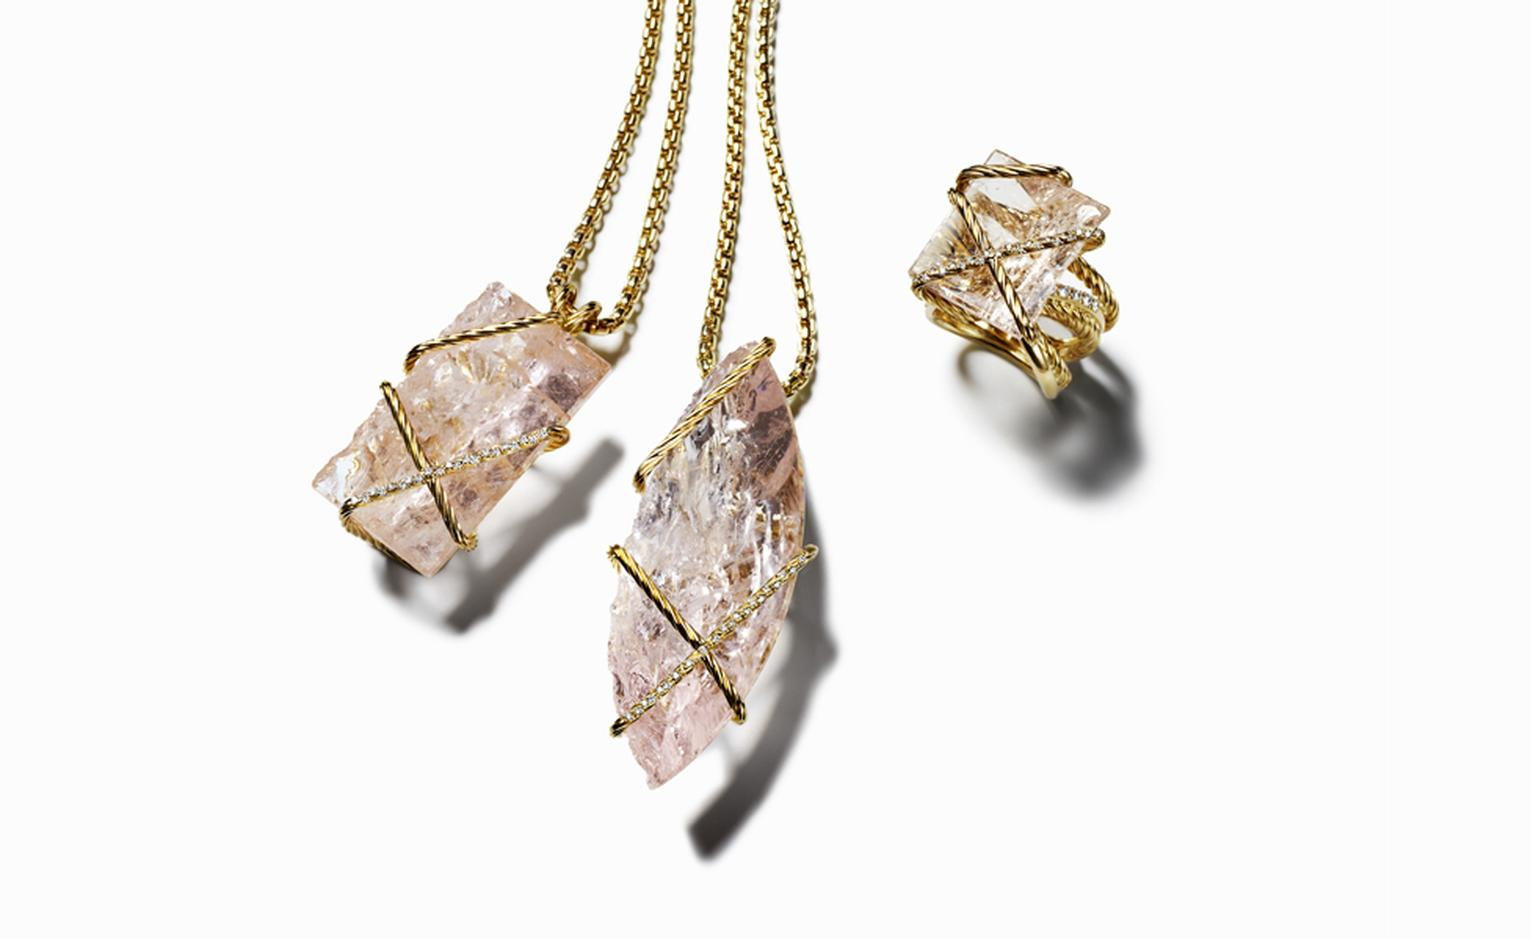 DAVID YURMAN, Morganite Cable Wrap Pendants, POA. Morganite Cable Wrap Ring, $8800